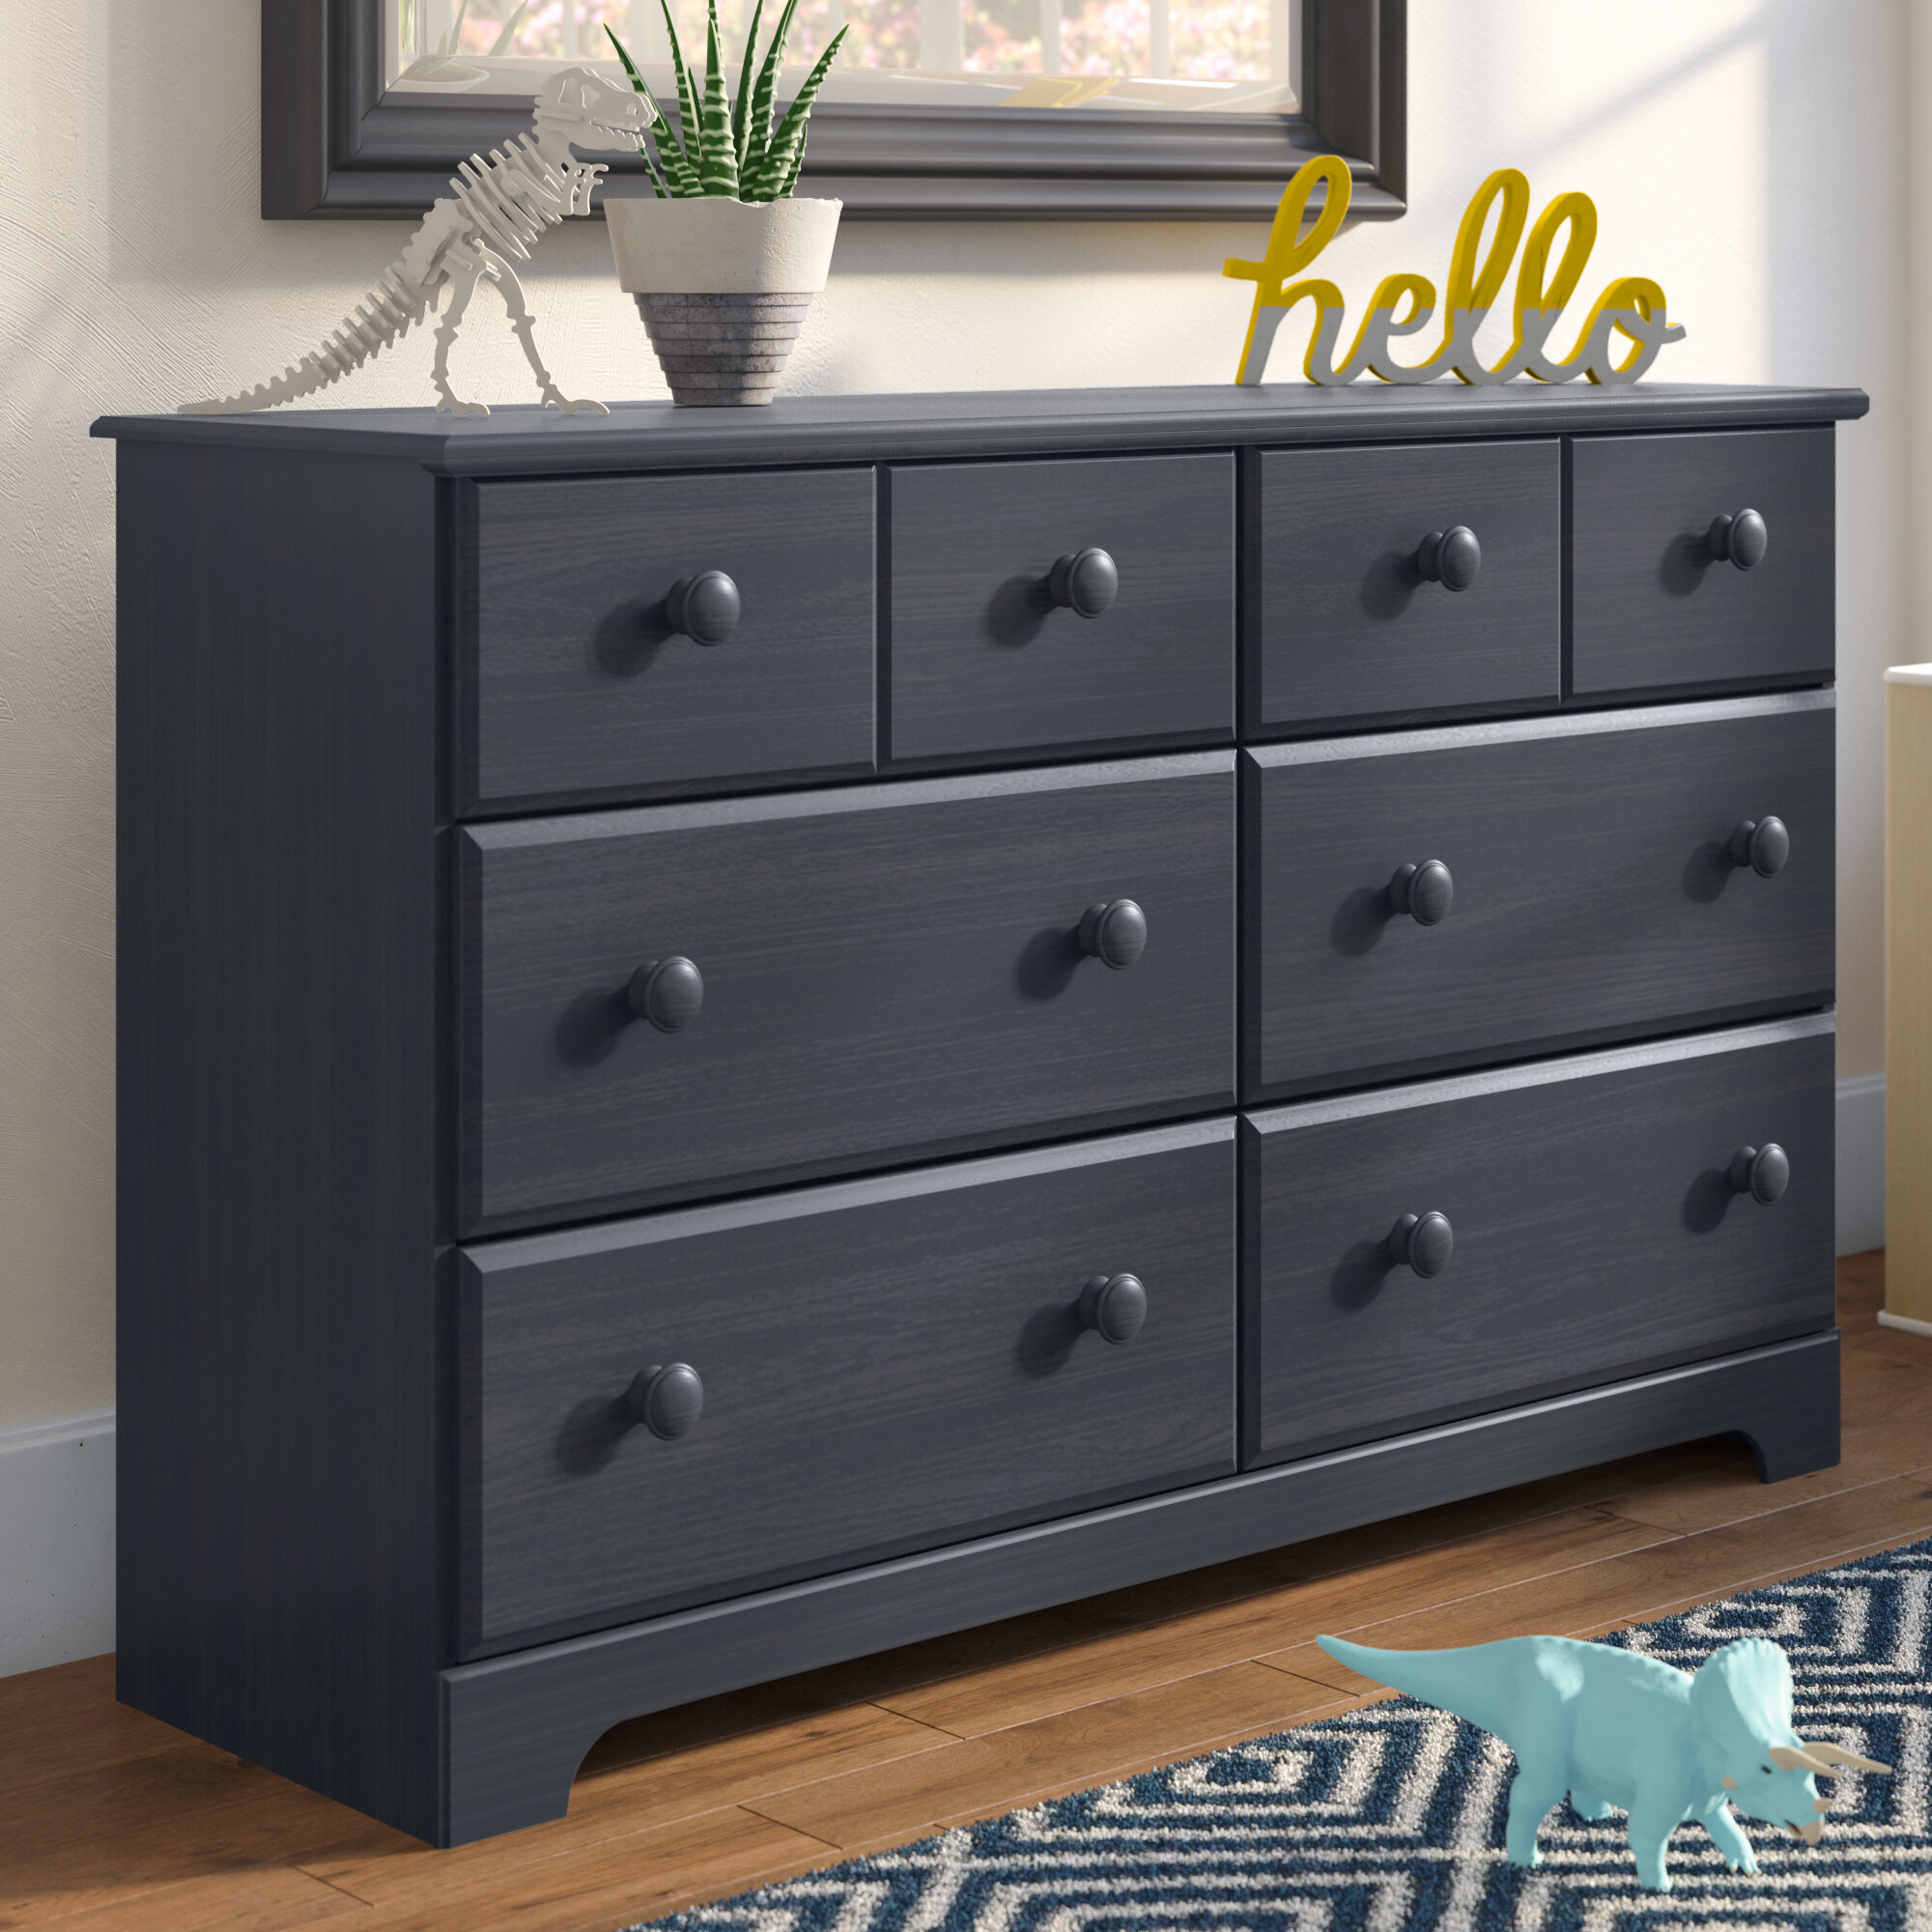 dressers knob homie pull kitchen dresser door unique wood mid pulls black handles exterior knobs cupboard century of make for discount crystal drawer image cabinet hardware interior